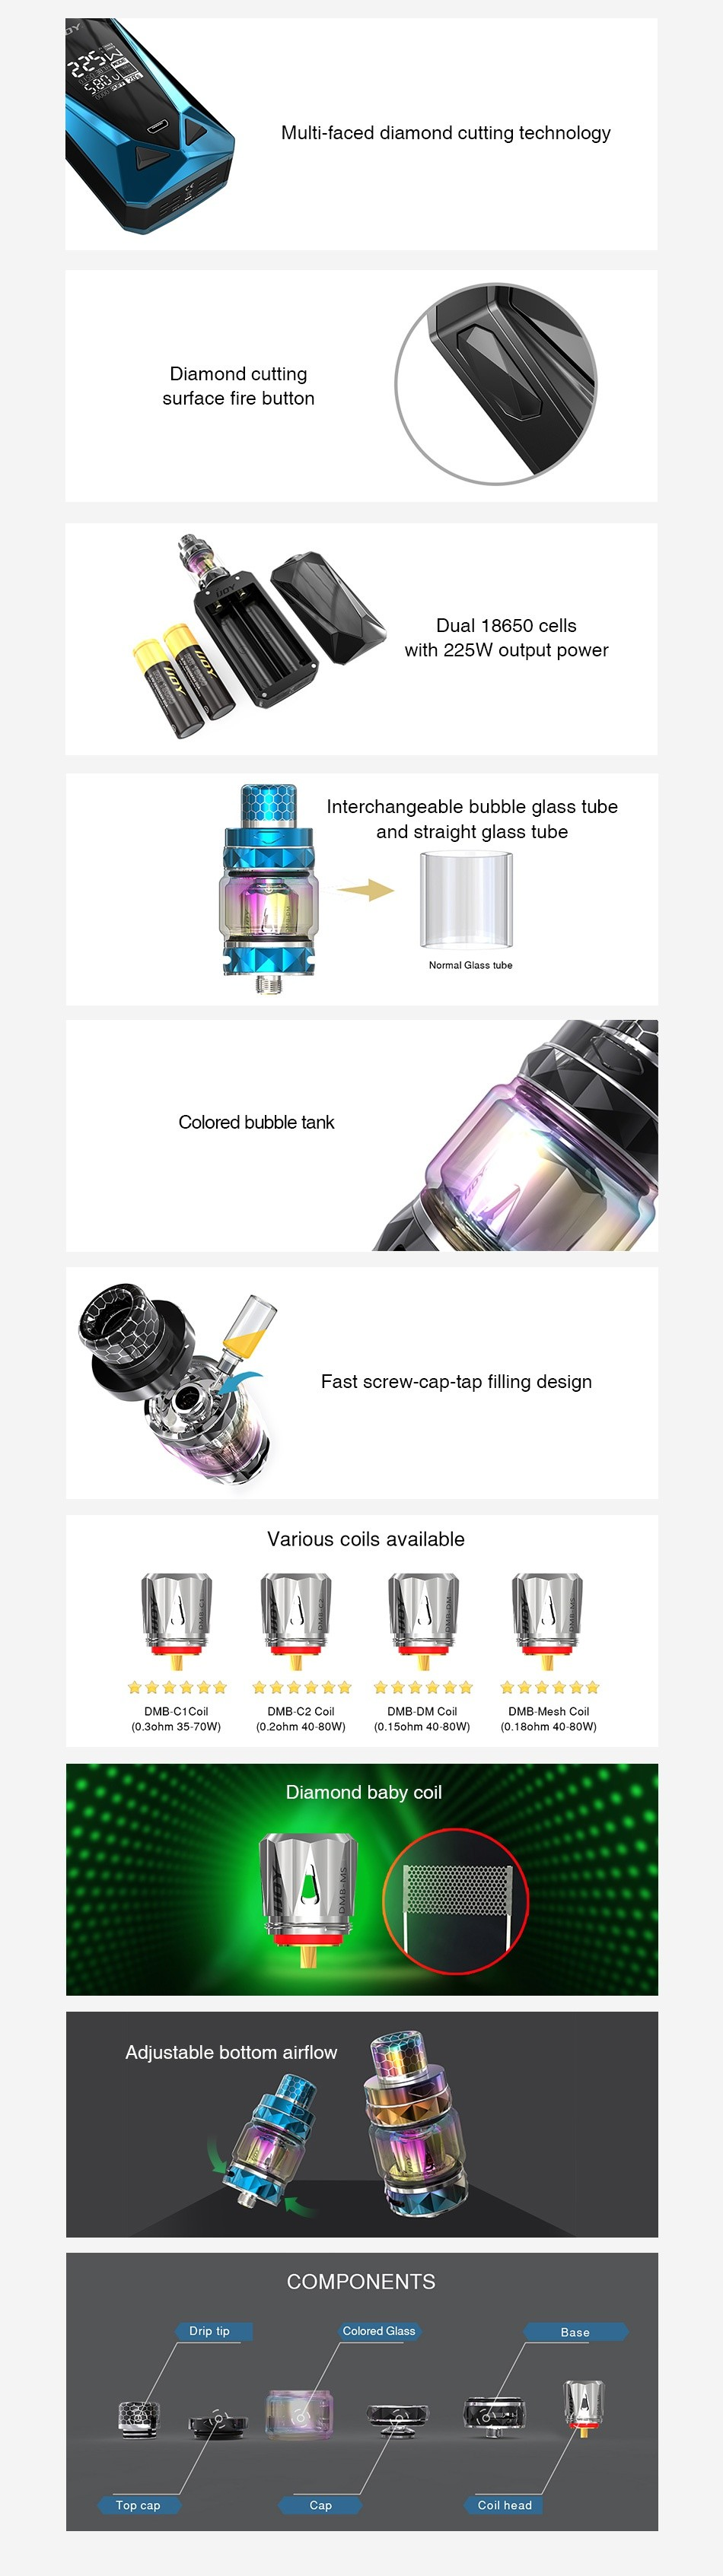 IJOY Diamond Mini 225W TC Kit Multi faced diamond cutting technology Diamond cutting surface fire button Dual 18650 CE with 225W output powel Interchangeable bubble glass tube and straight glass tube Colored bubble tank design Various coils available                      DME Mesh c nw  D 15ahm 40 80 0  10  18chm 40 aCw  Adjustable bottom airflow COMPONENTS